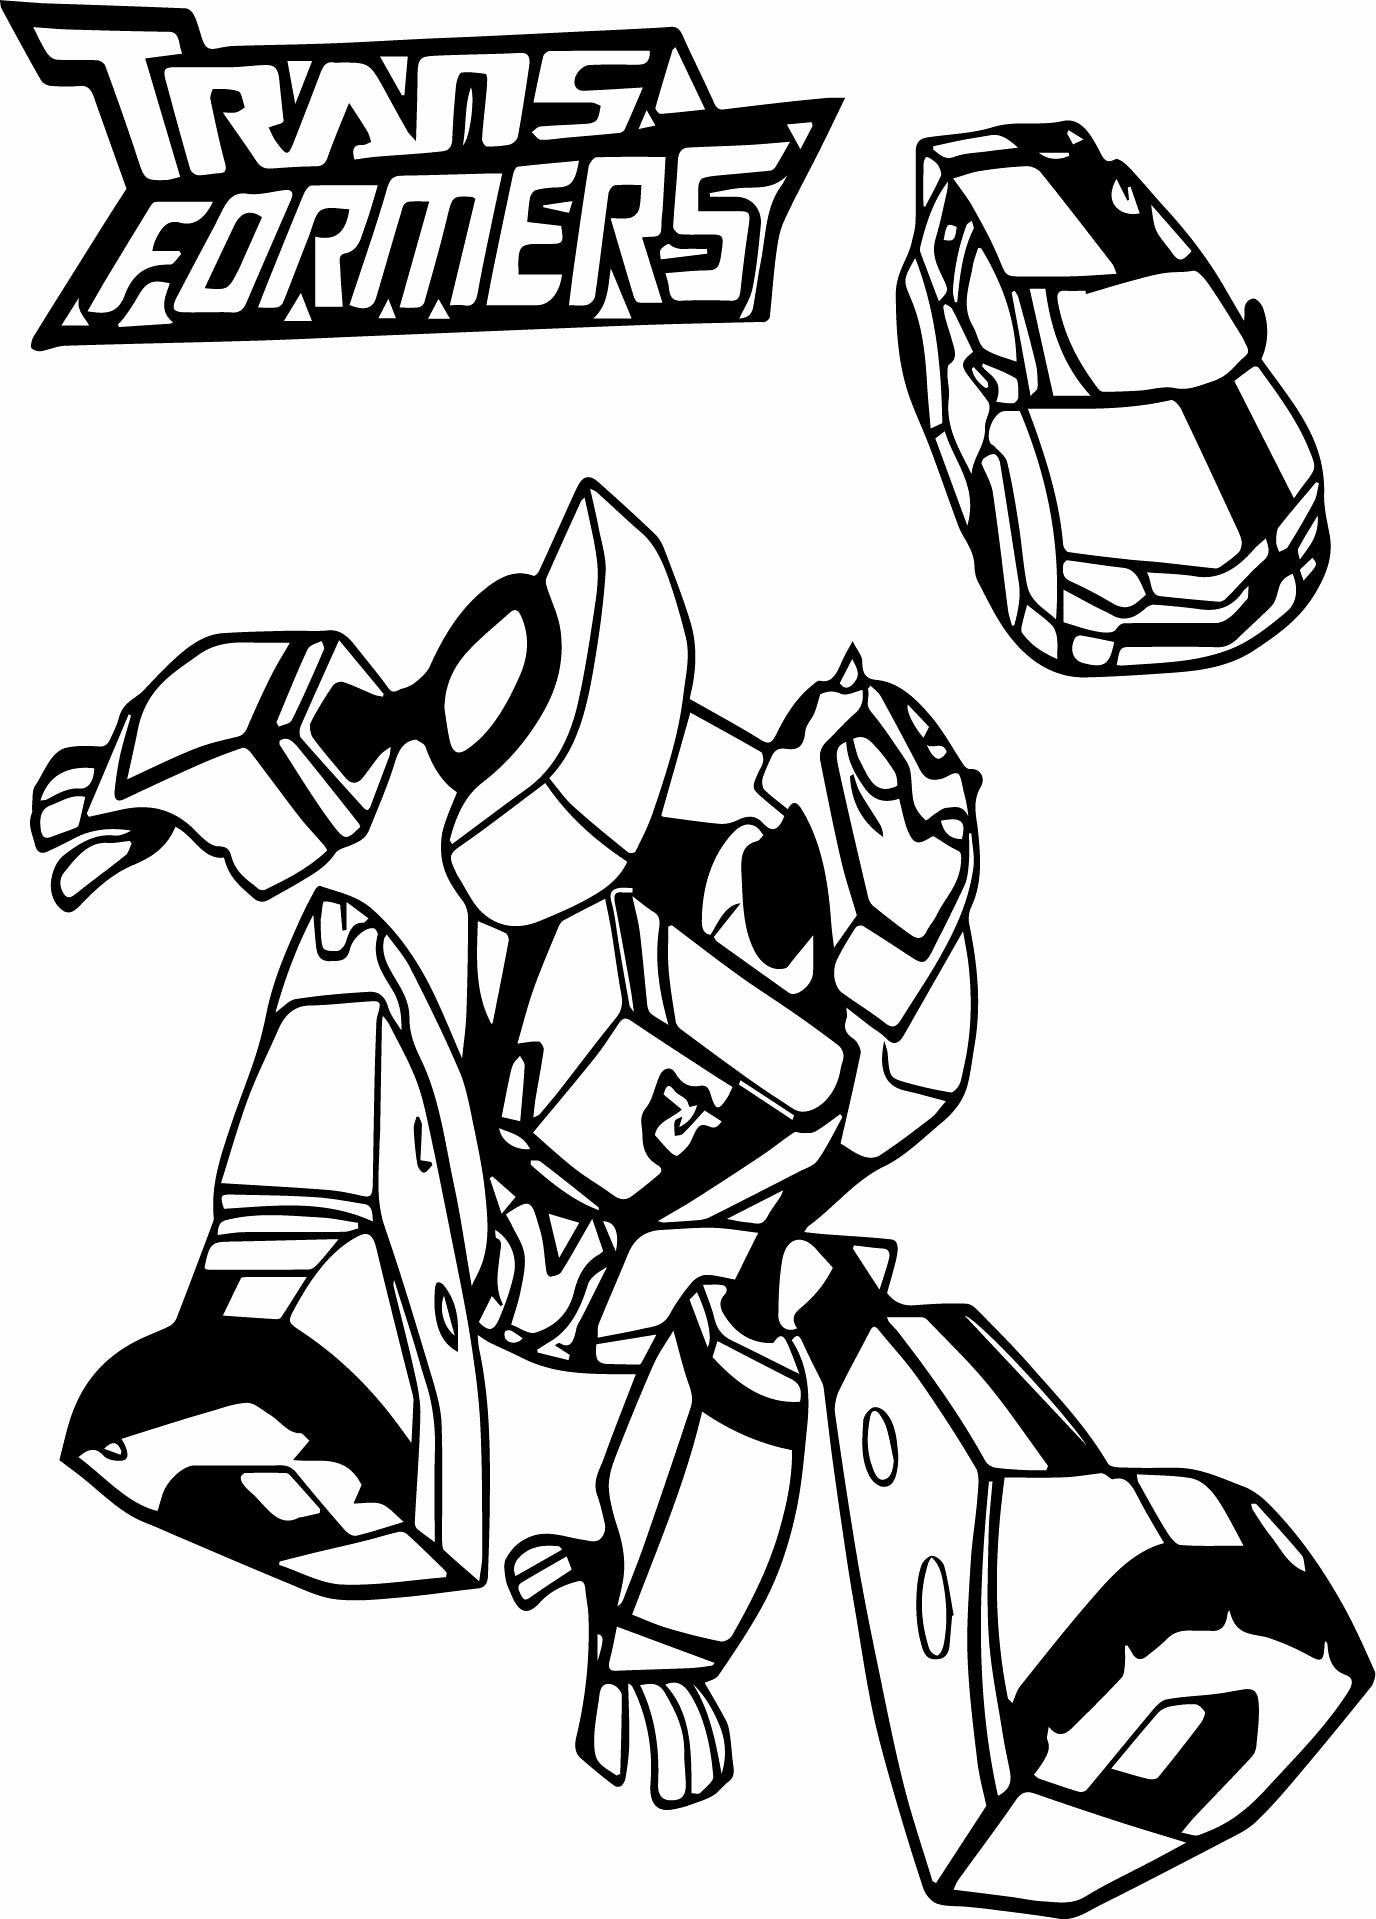 Bumblebee Transformer Coloring Page Beautiful 33 Transformers Coloring Pages Bumblebee Trans Bee Coloring Pages Transformers Coloring Pages Cars Coloring Pages